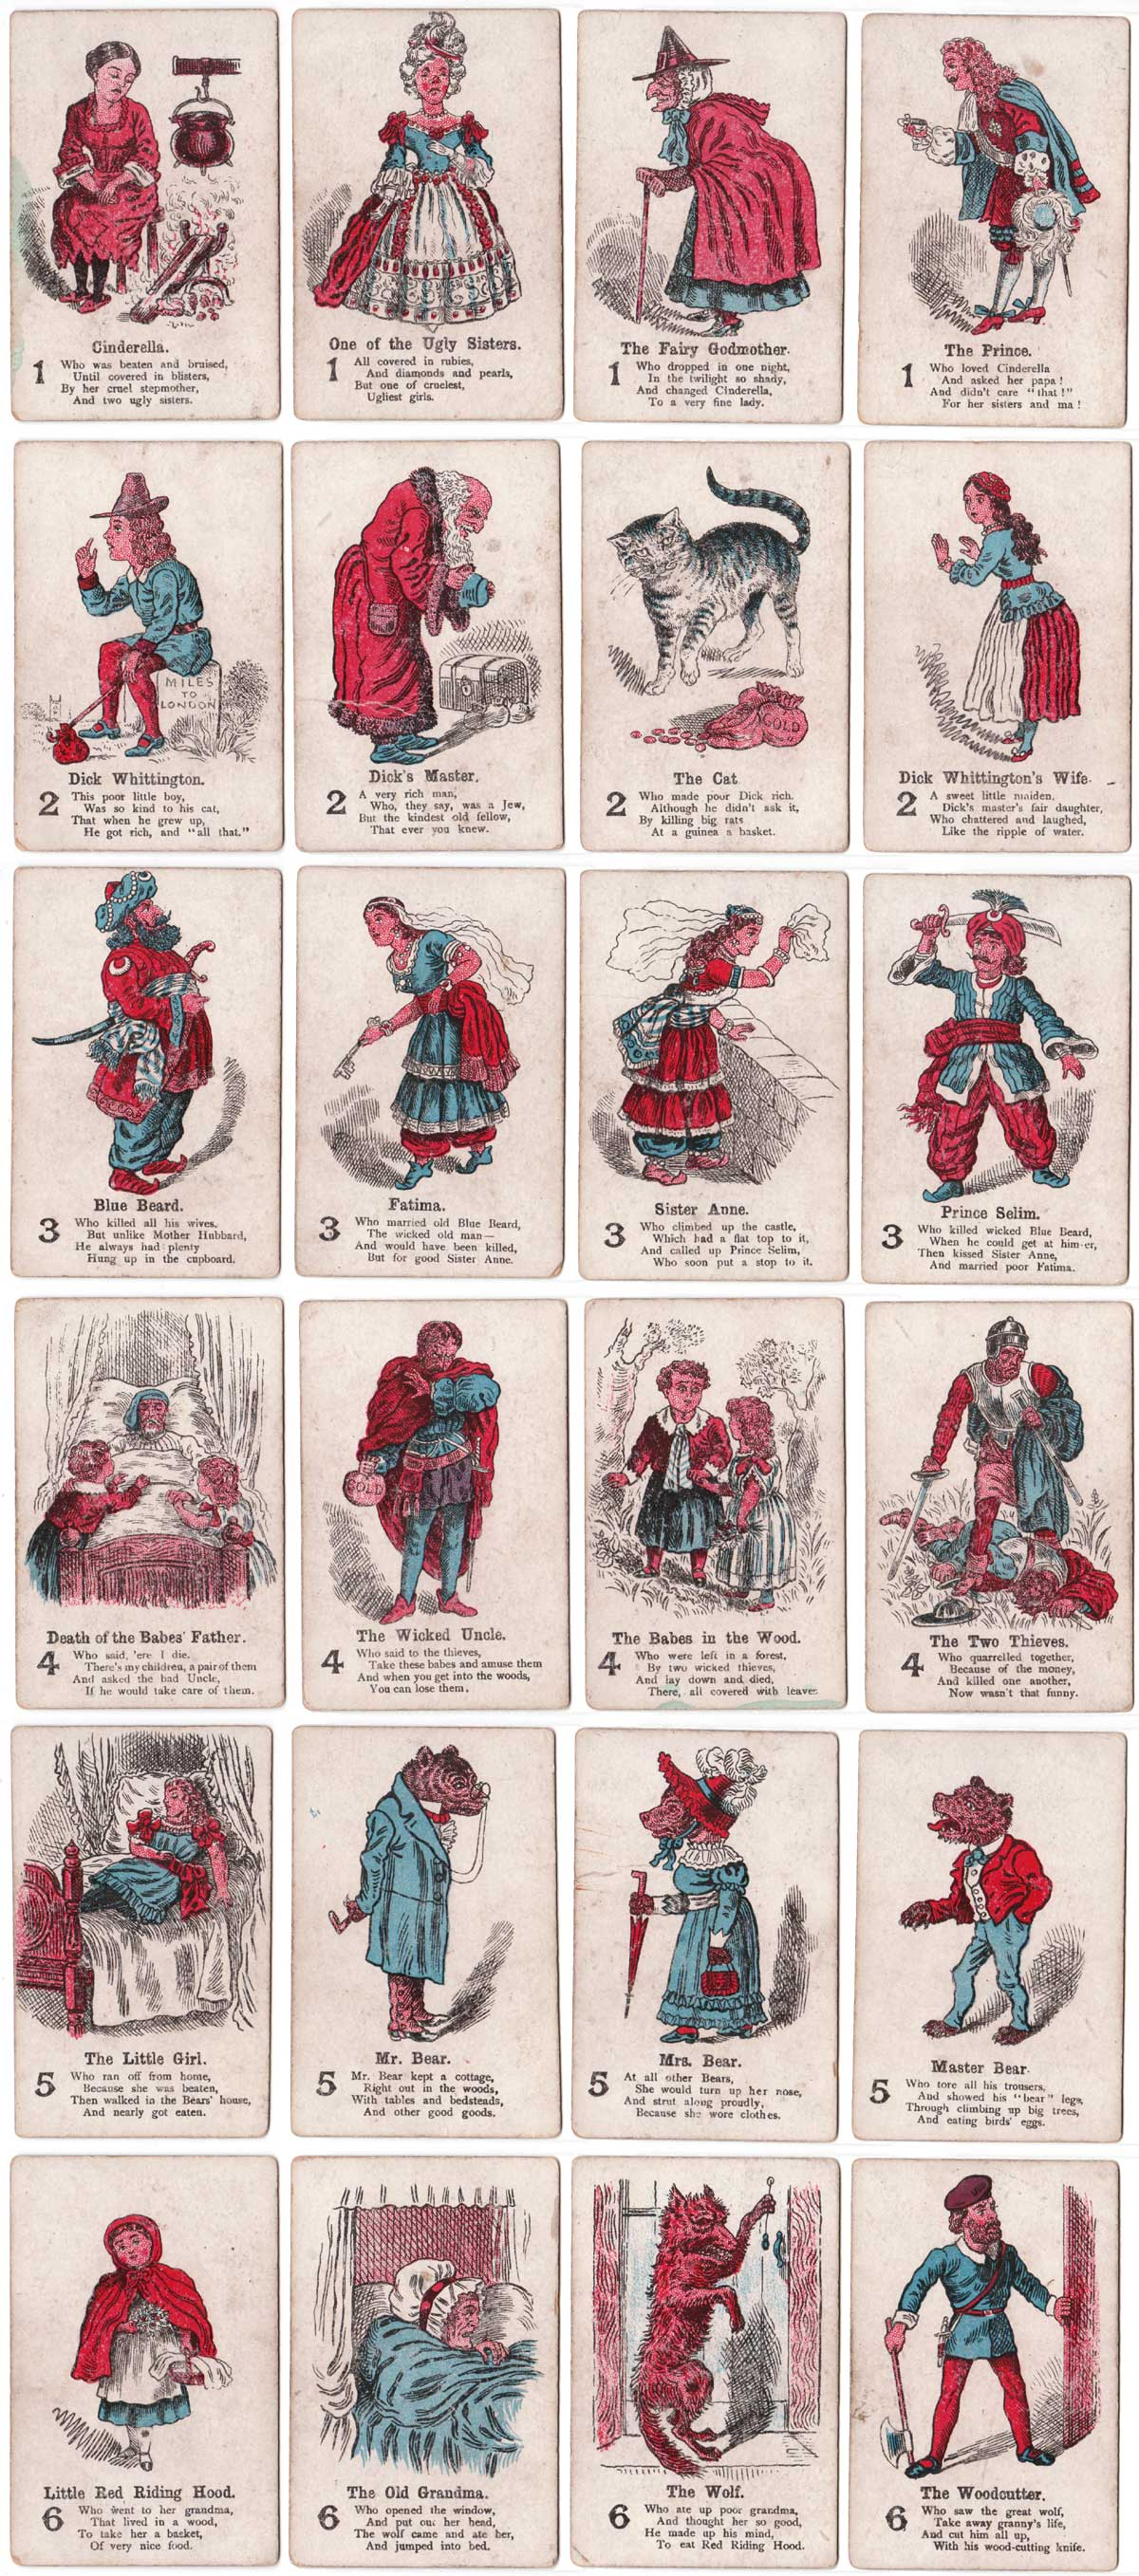 the Game of Fairy Tales published by Multum in Parvo, from 1896